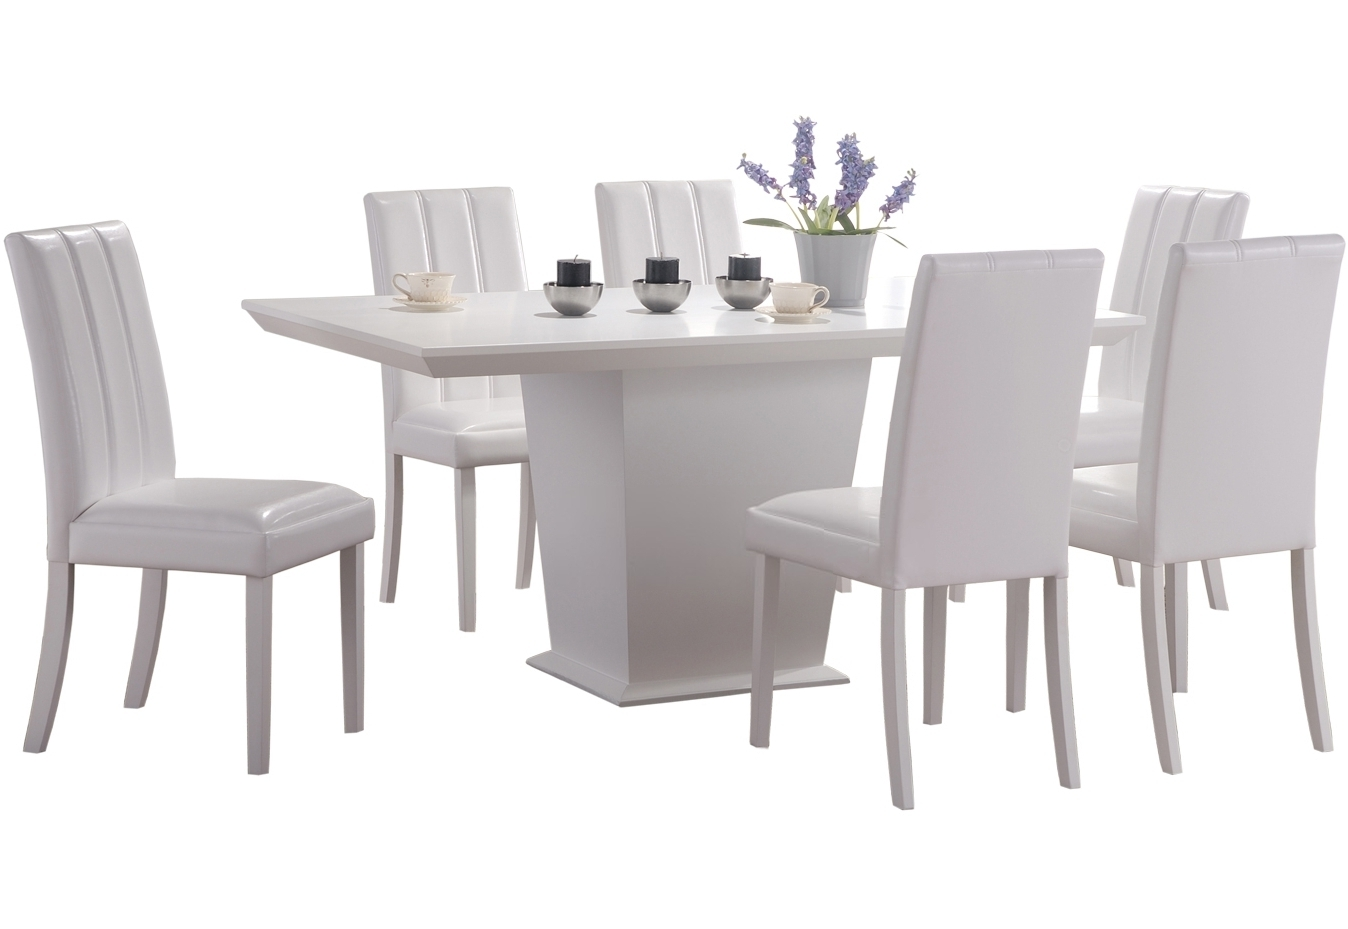 Well Known Interesting White Dining Room Tables Pictures Design Ideas Chair Intended For White Dining Tables With 6 Chairs (View 17 of 25)